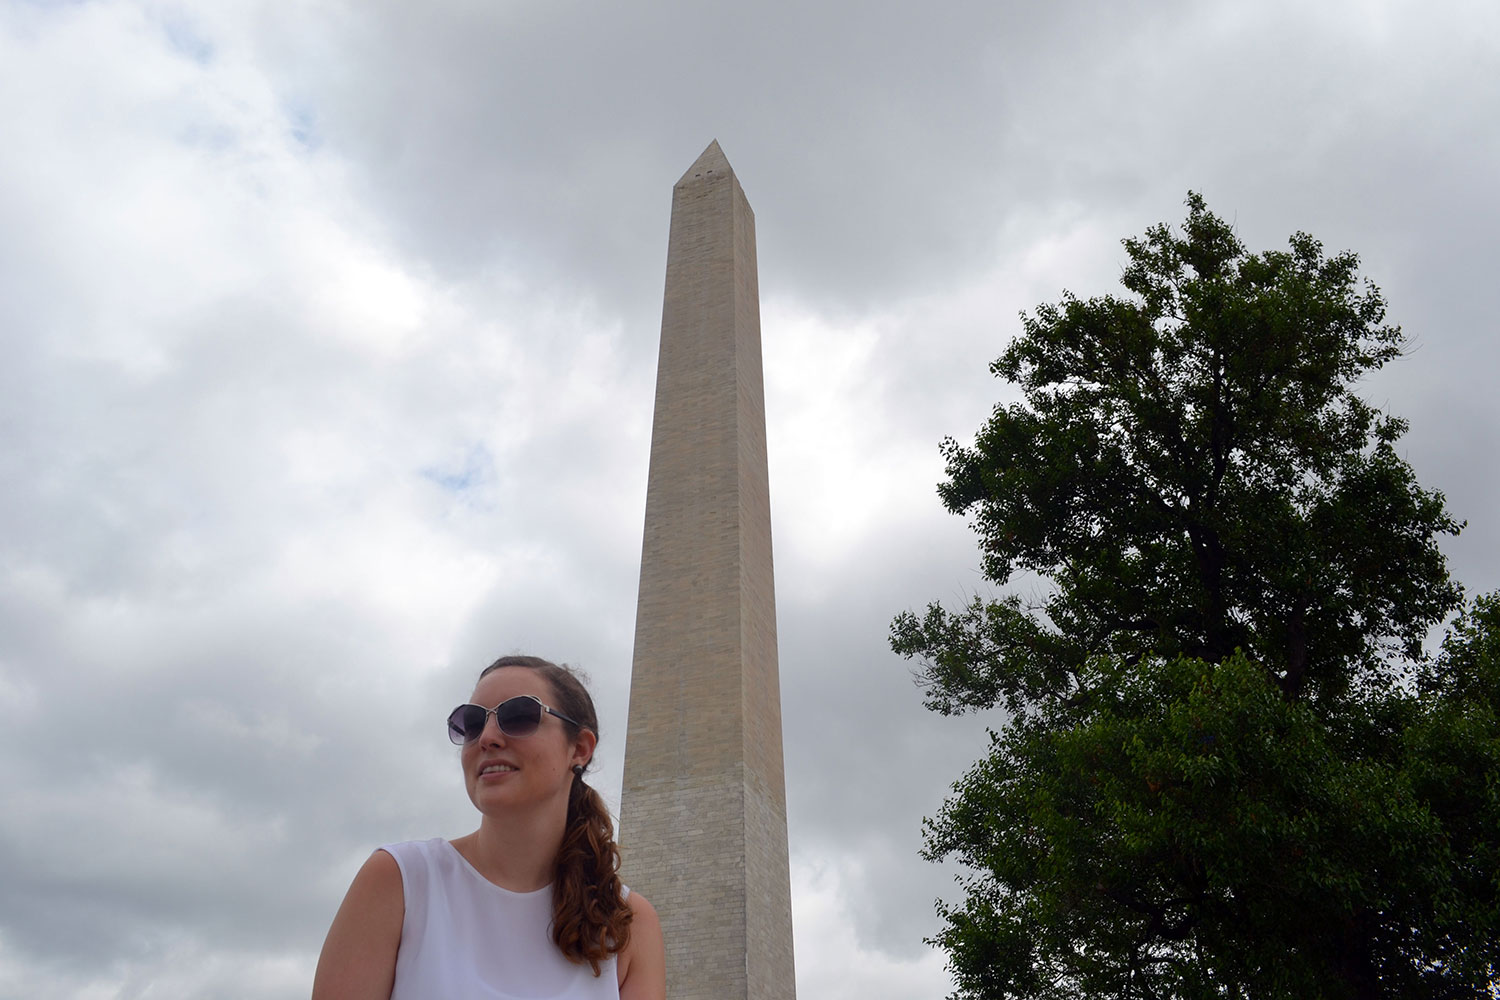 Travel Diary: Washington, D.C. | Part 1 – White House, Monuments & Co